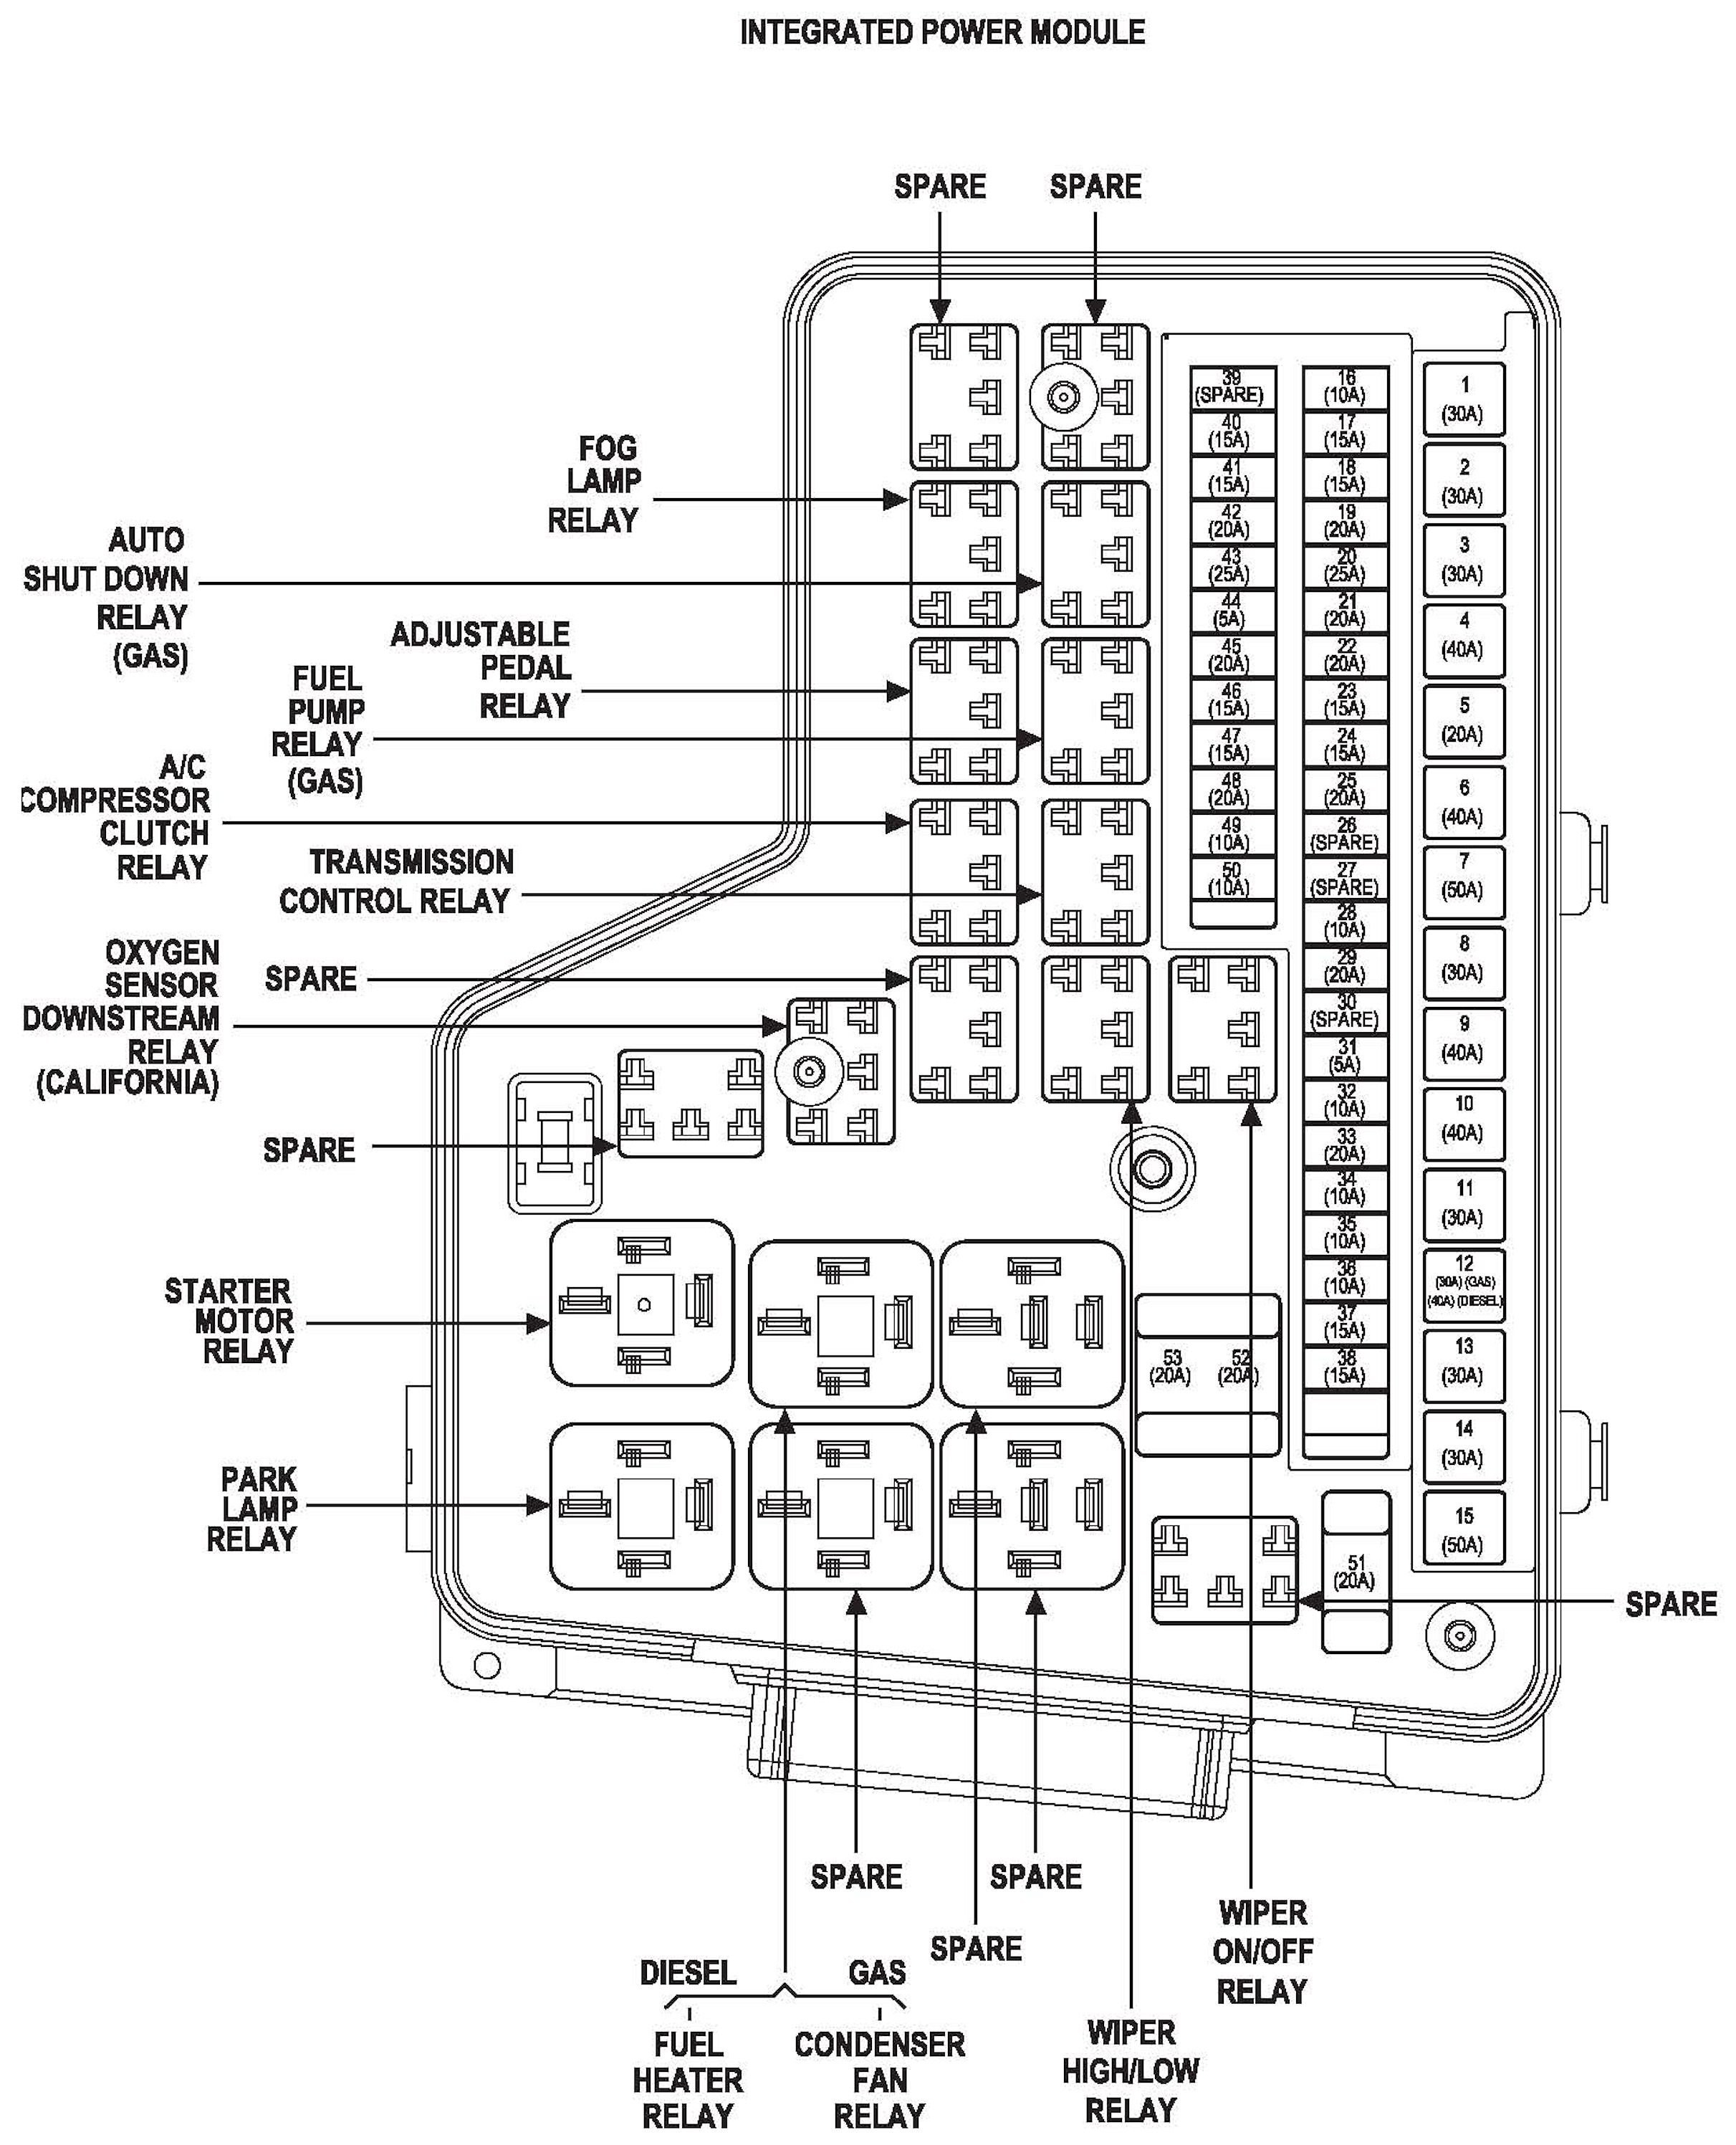 Ram Fuse Box | Wiring Diagram - 2004 Dodge Ram 1500 Wiring Diagram